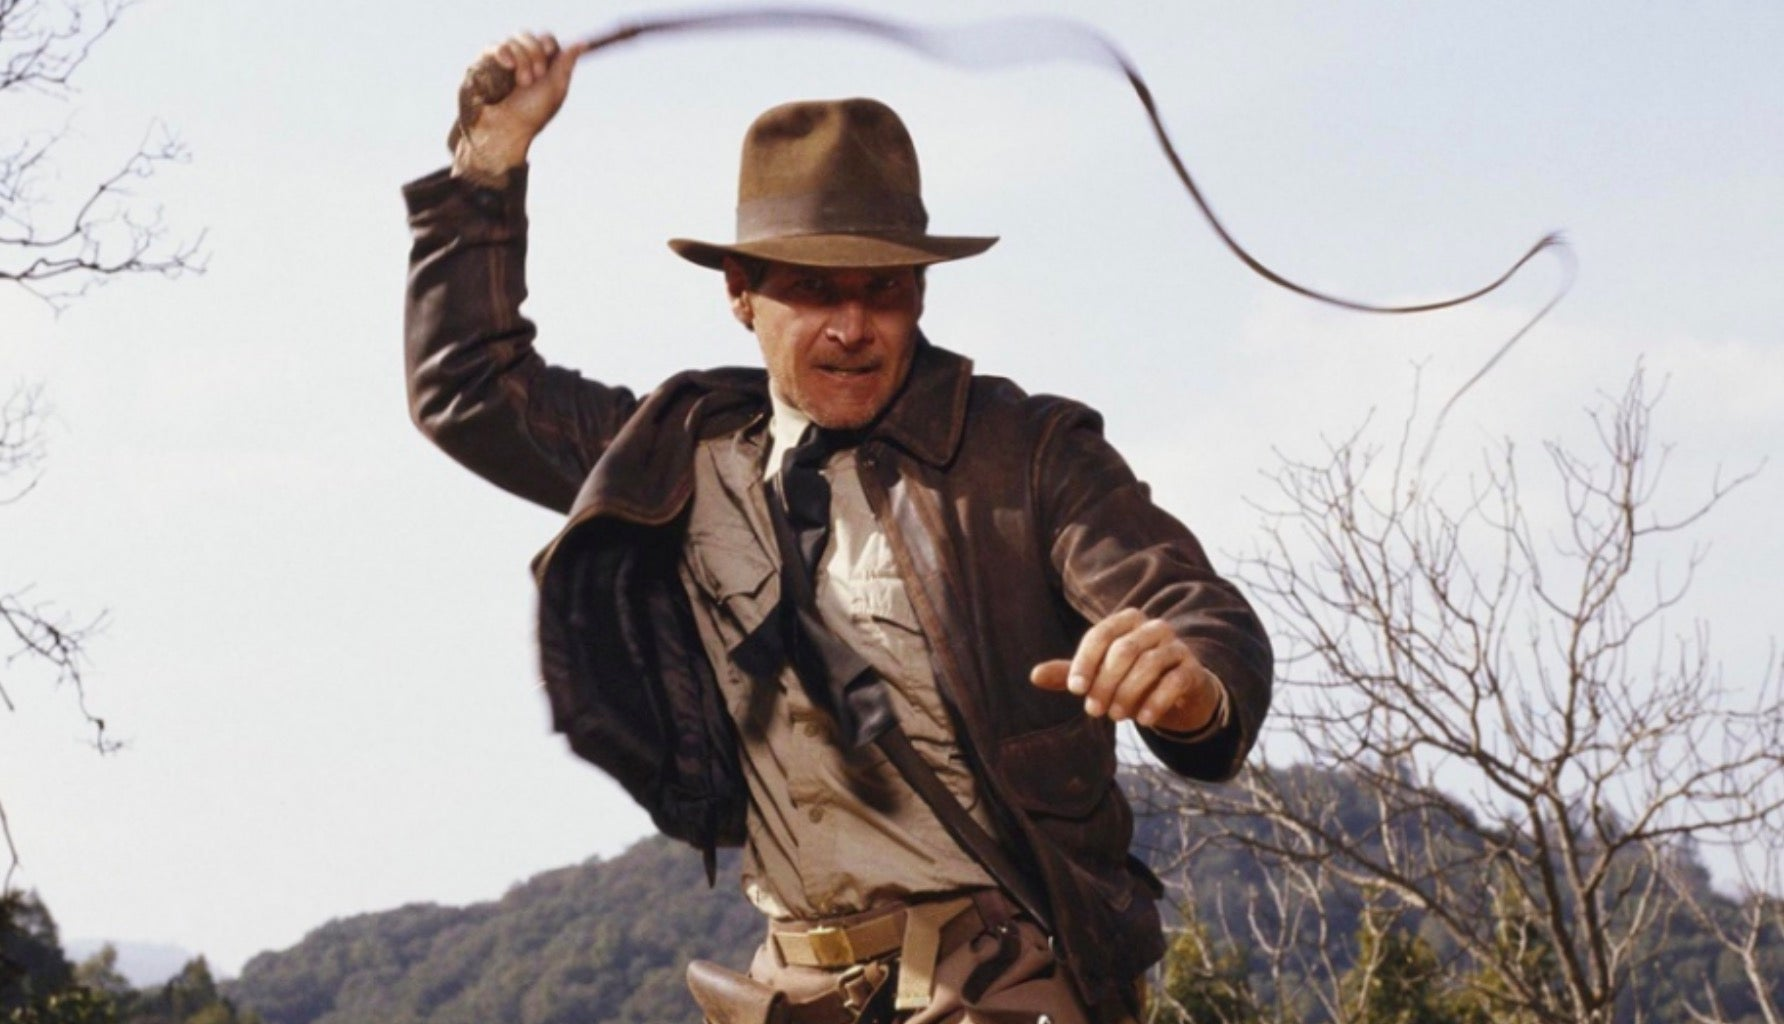 Steven Spielberg Seems To Have Suggested Indiana Jones Could Be A Woman